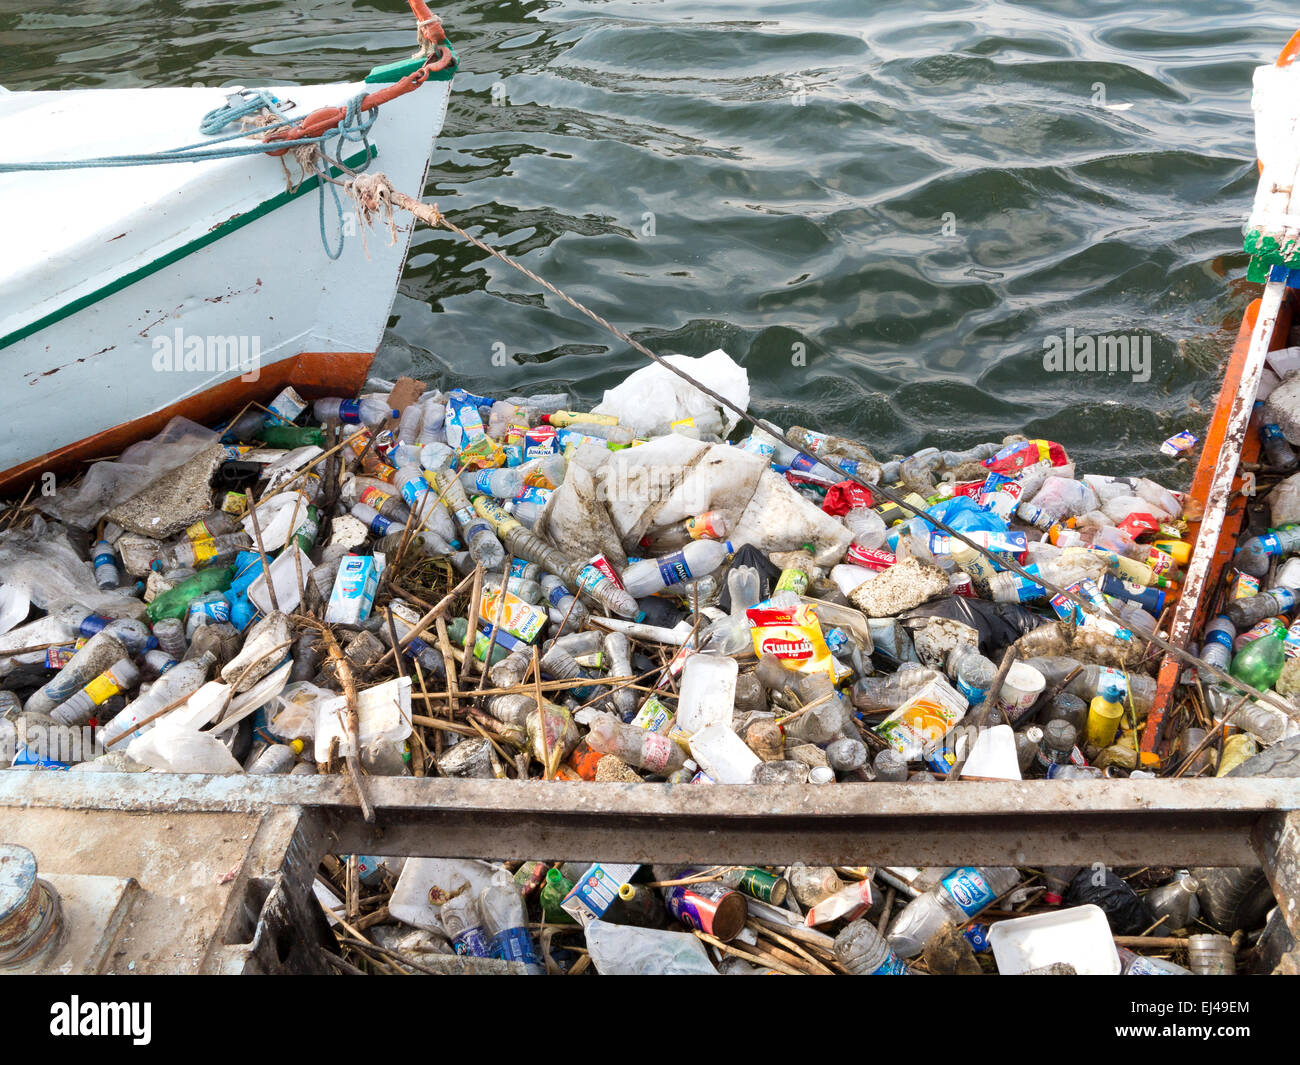 Plastic rubbish floating on the river Nile caught between docked boats and the jetty. Egypt Africa - Stock Image